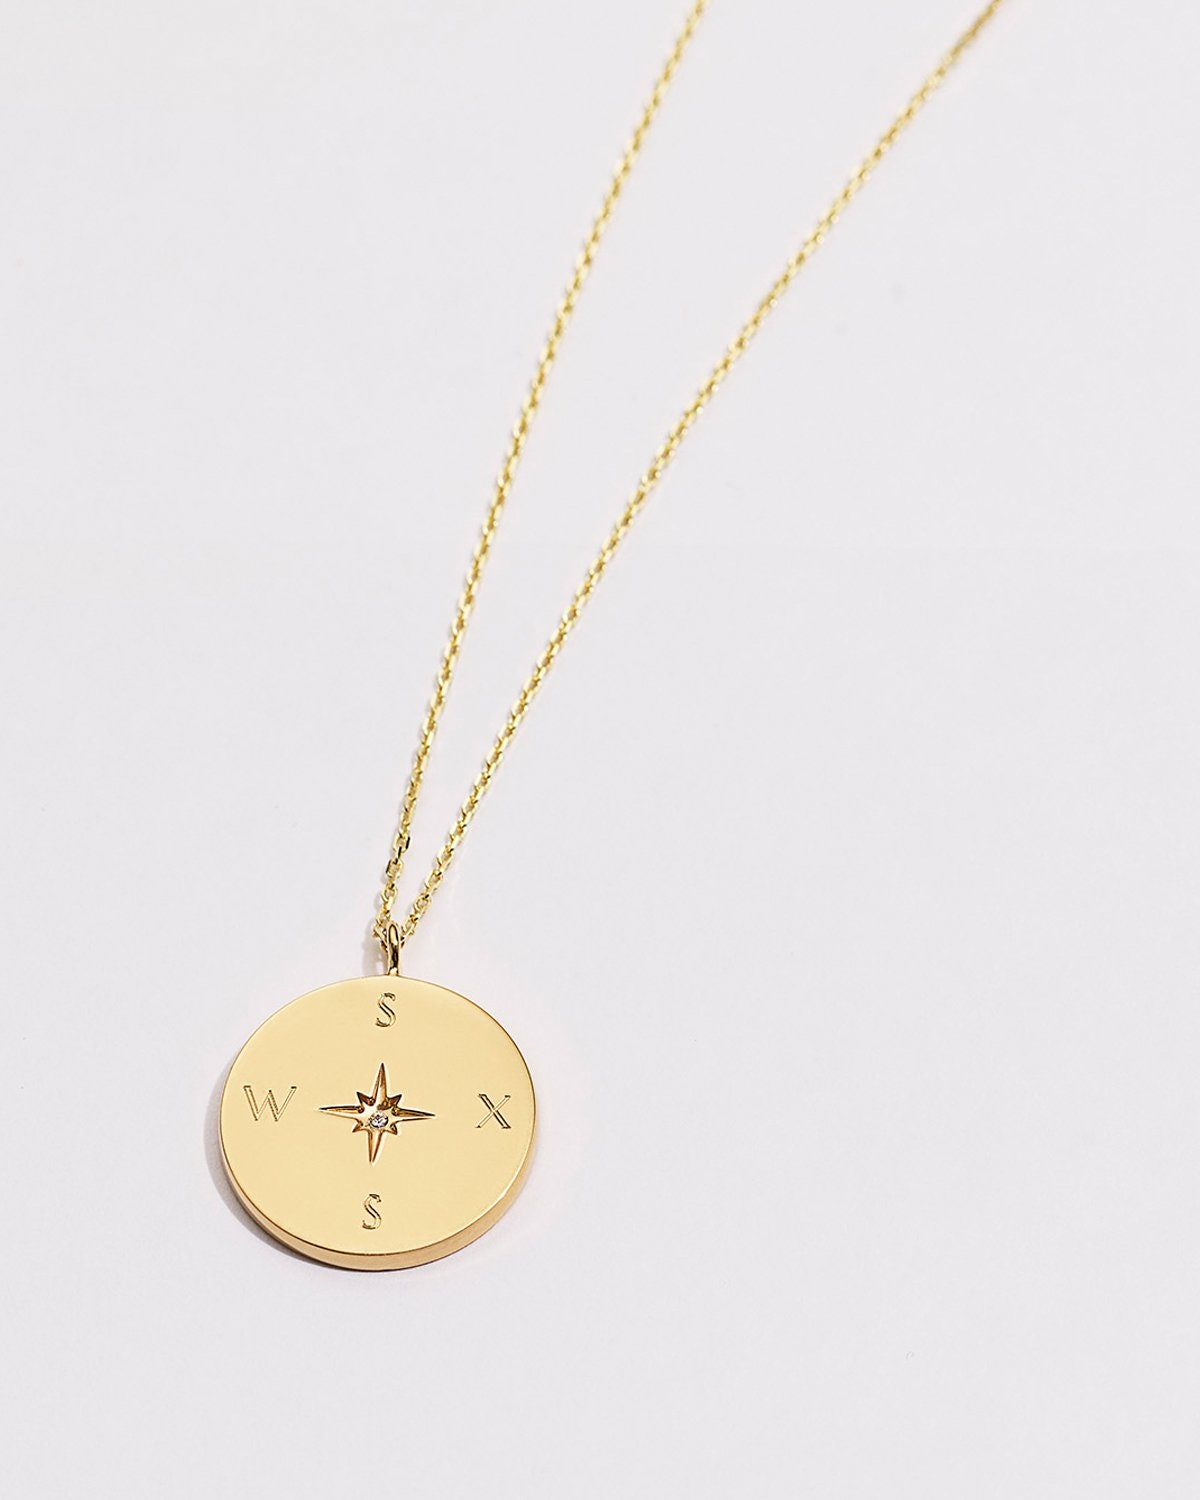 Love Compass gold vermeil necklace from Bryan Anthonys.